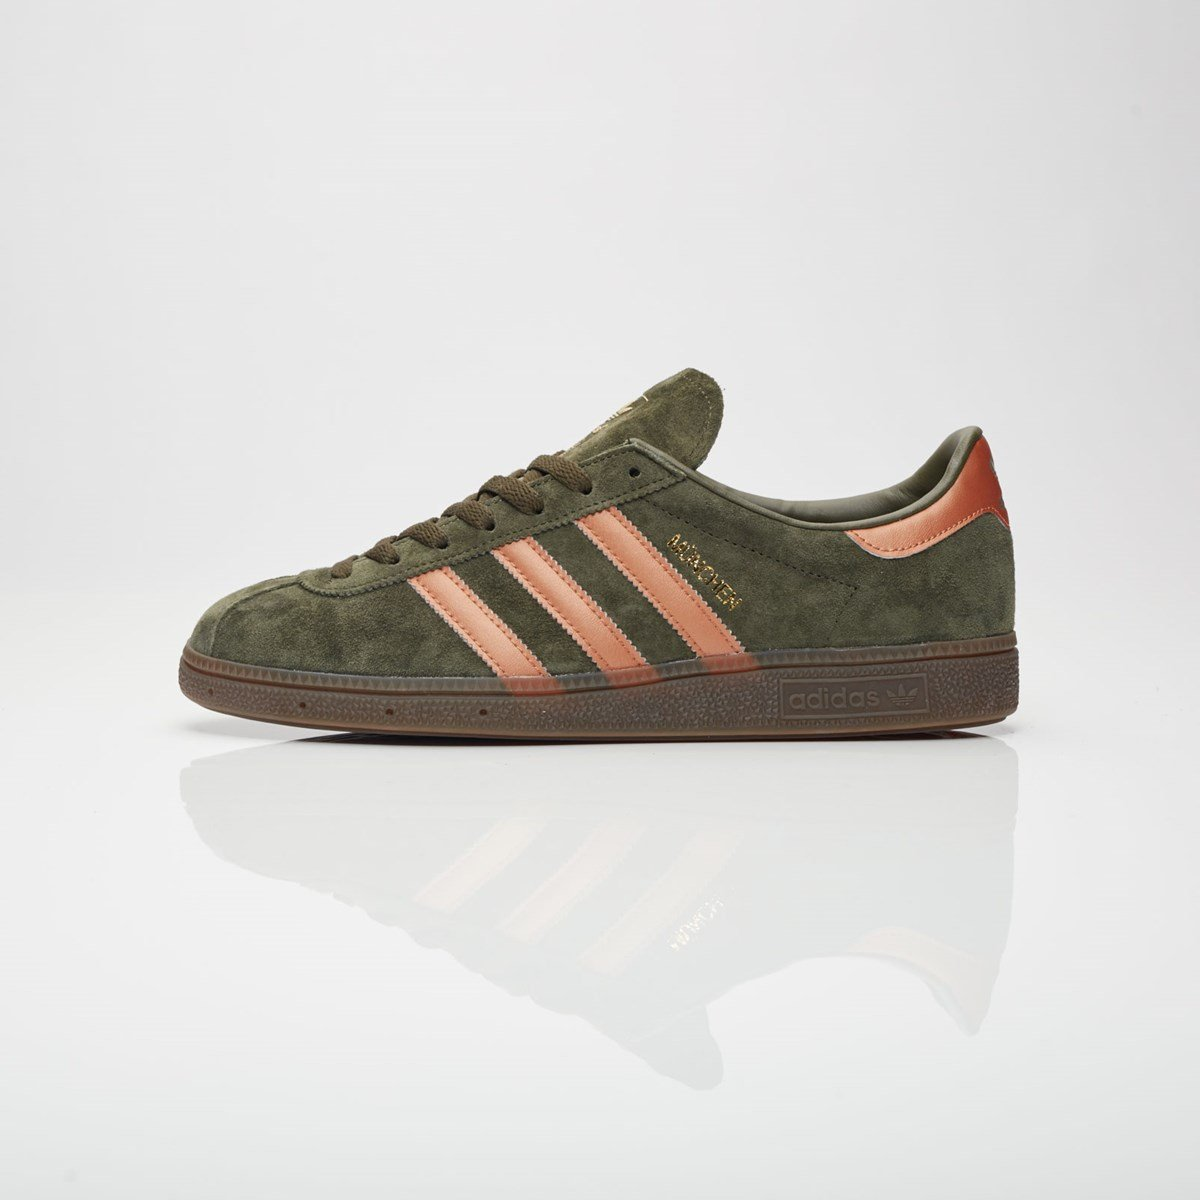 adidas München shoes green copper